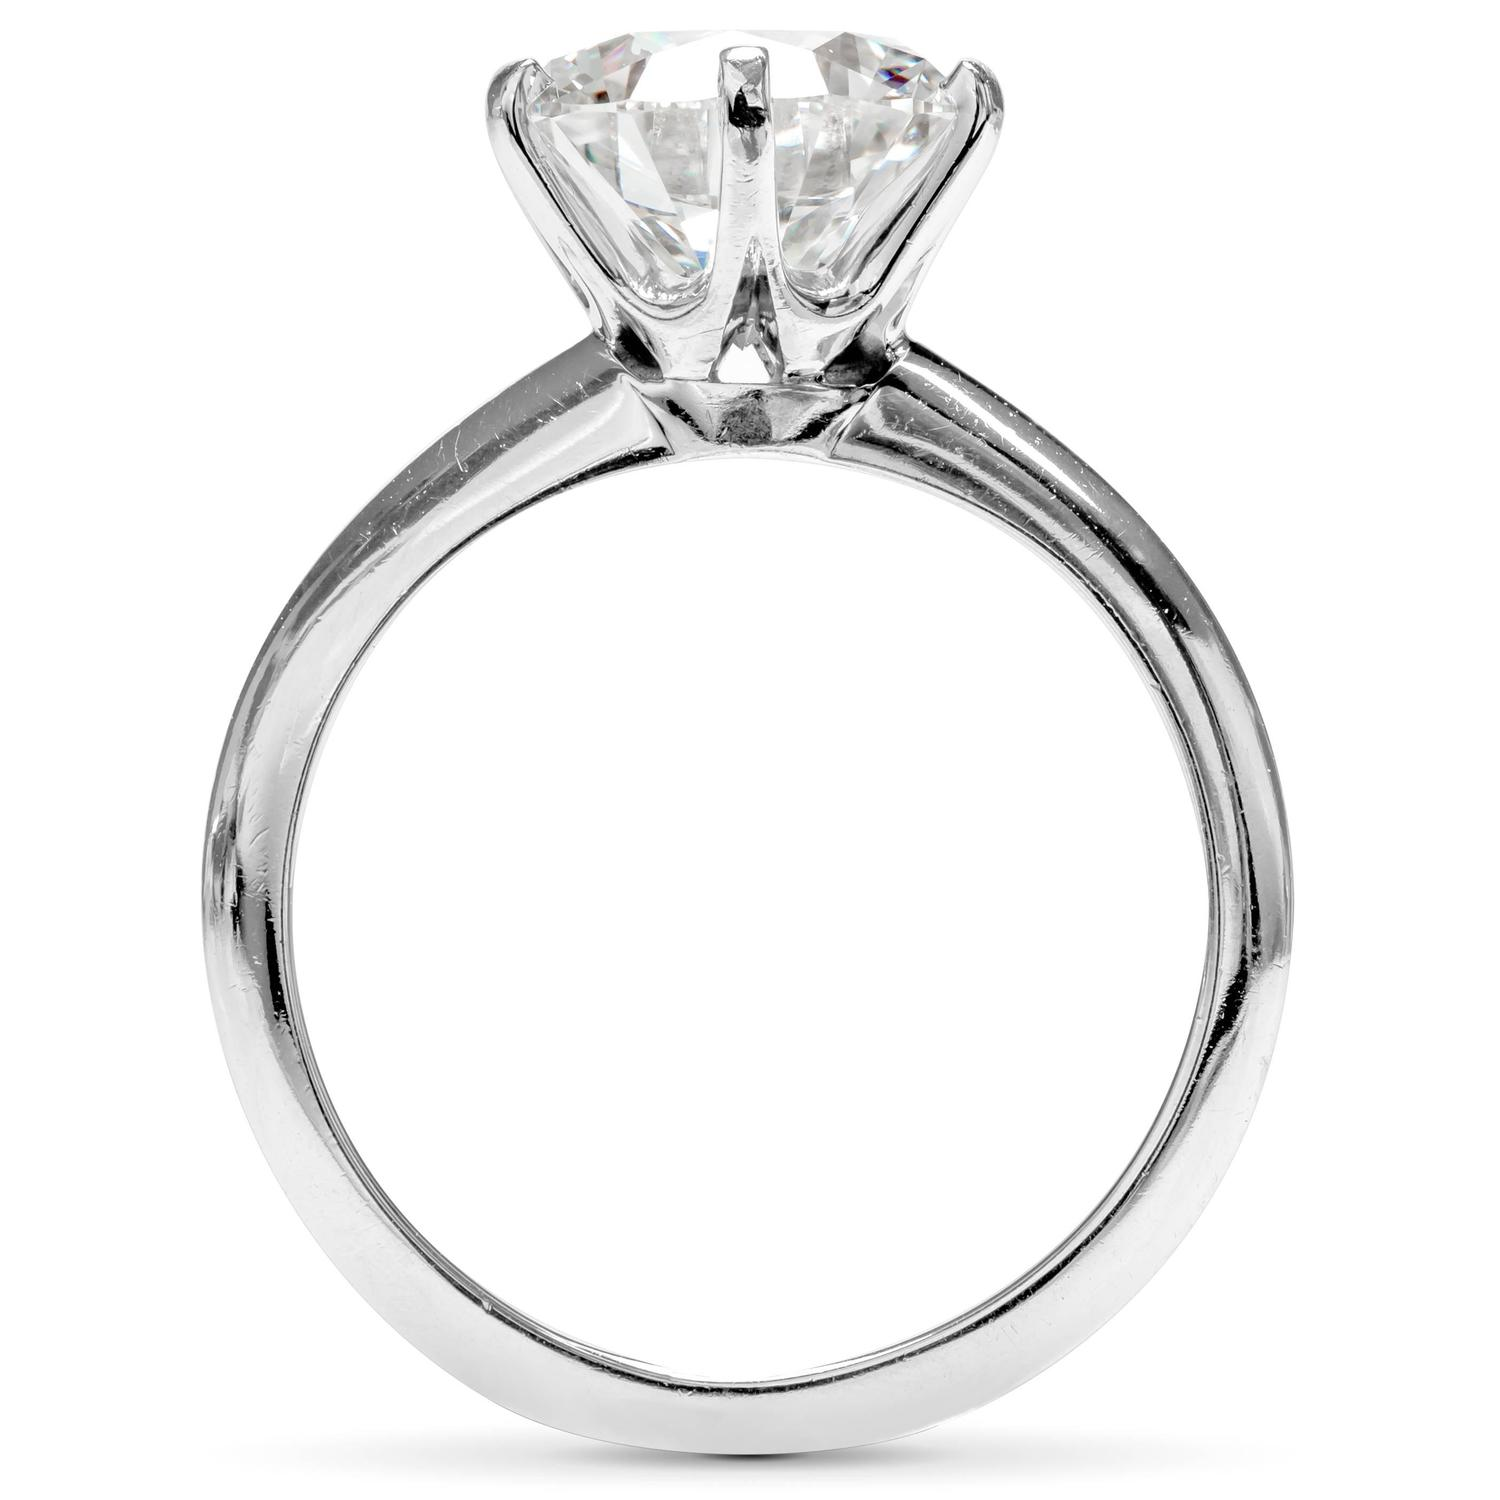 Tiffany And Co 2 35 Carat Diamond Platinum Solitaire Ring